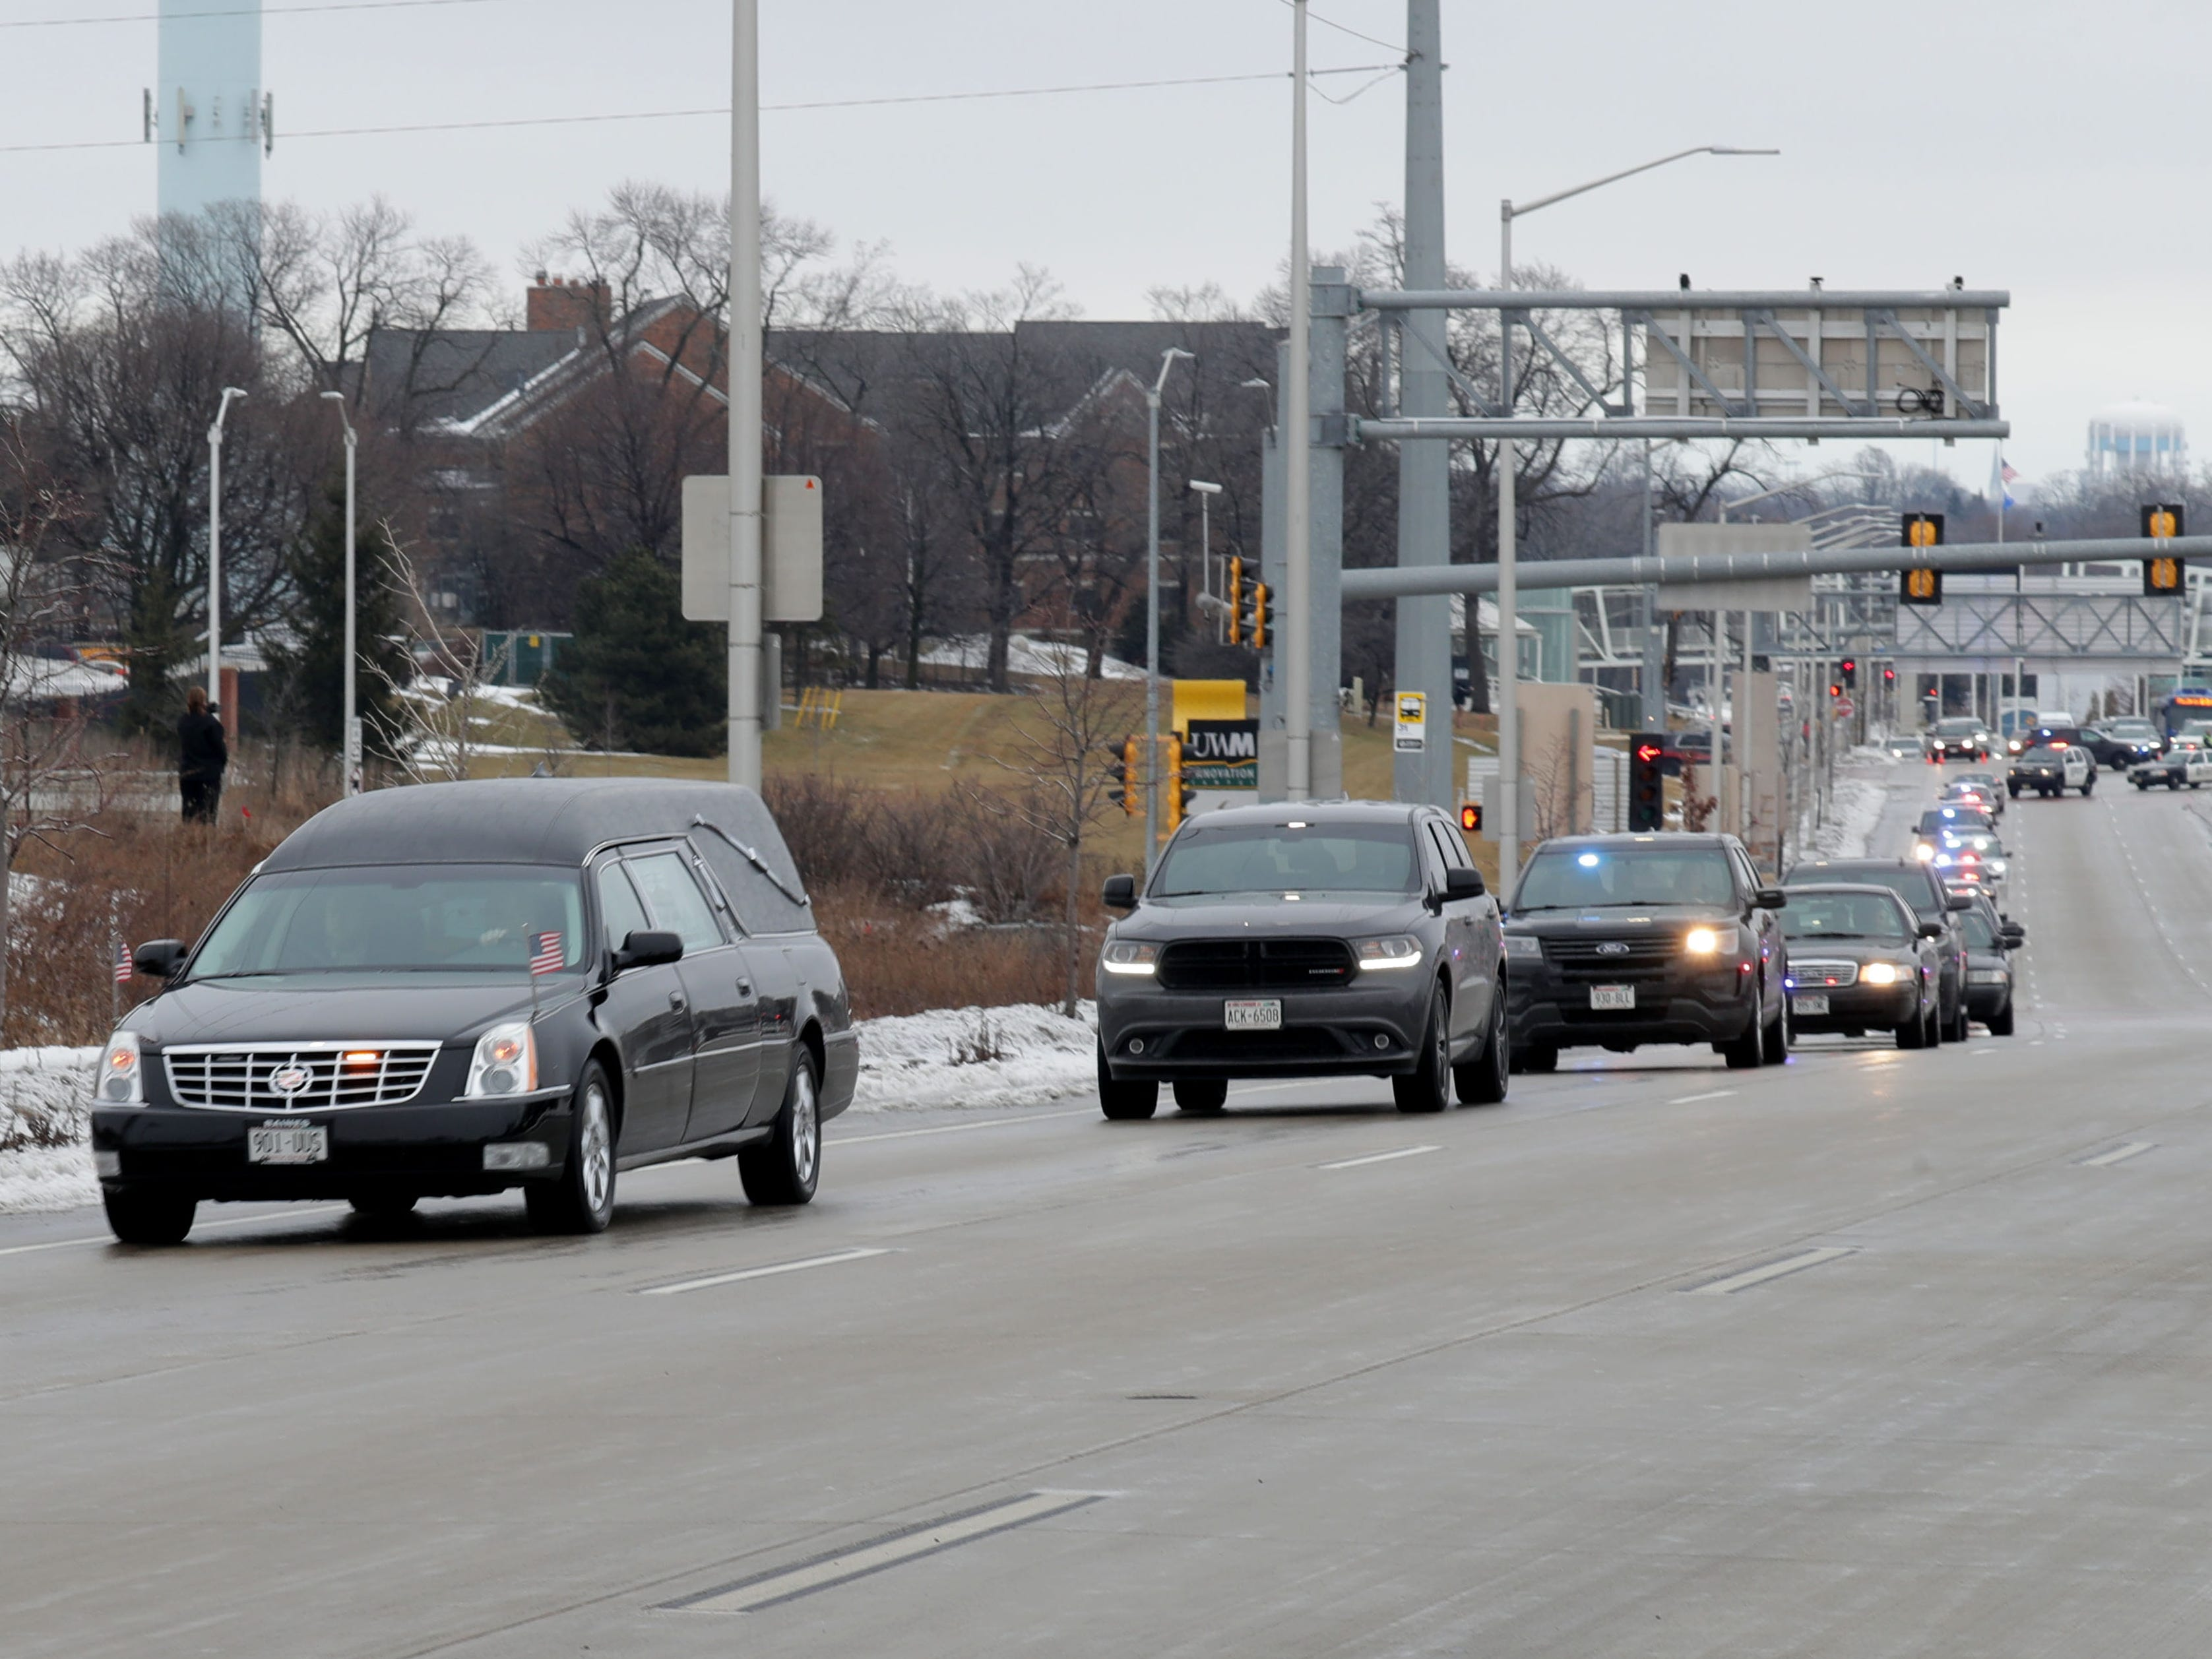 A hearse is seen in the procession as police vehicles leave Froedtert Hospital in Wauwatosa on Wednesday on its way to the Milwaukee County Medical Examiner's Office with the hearse containing the body of a fallen Milwaukee police officer.